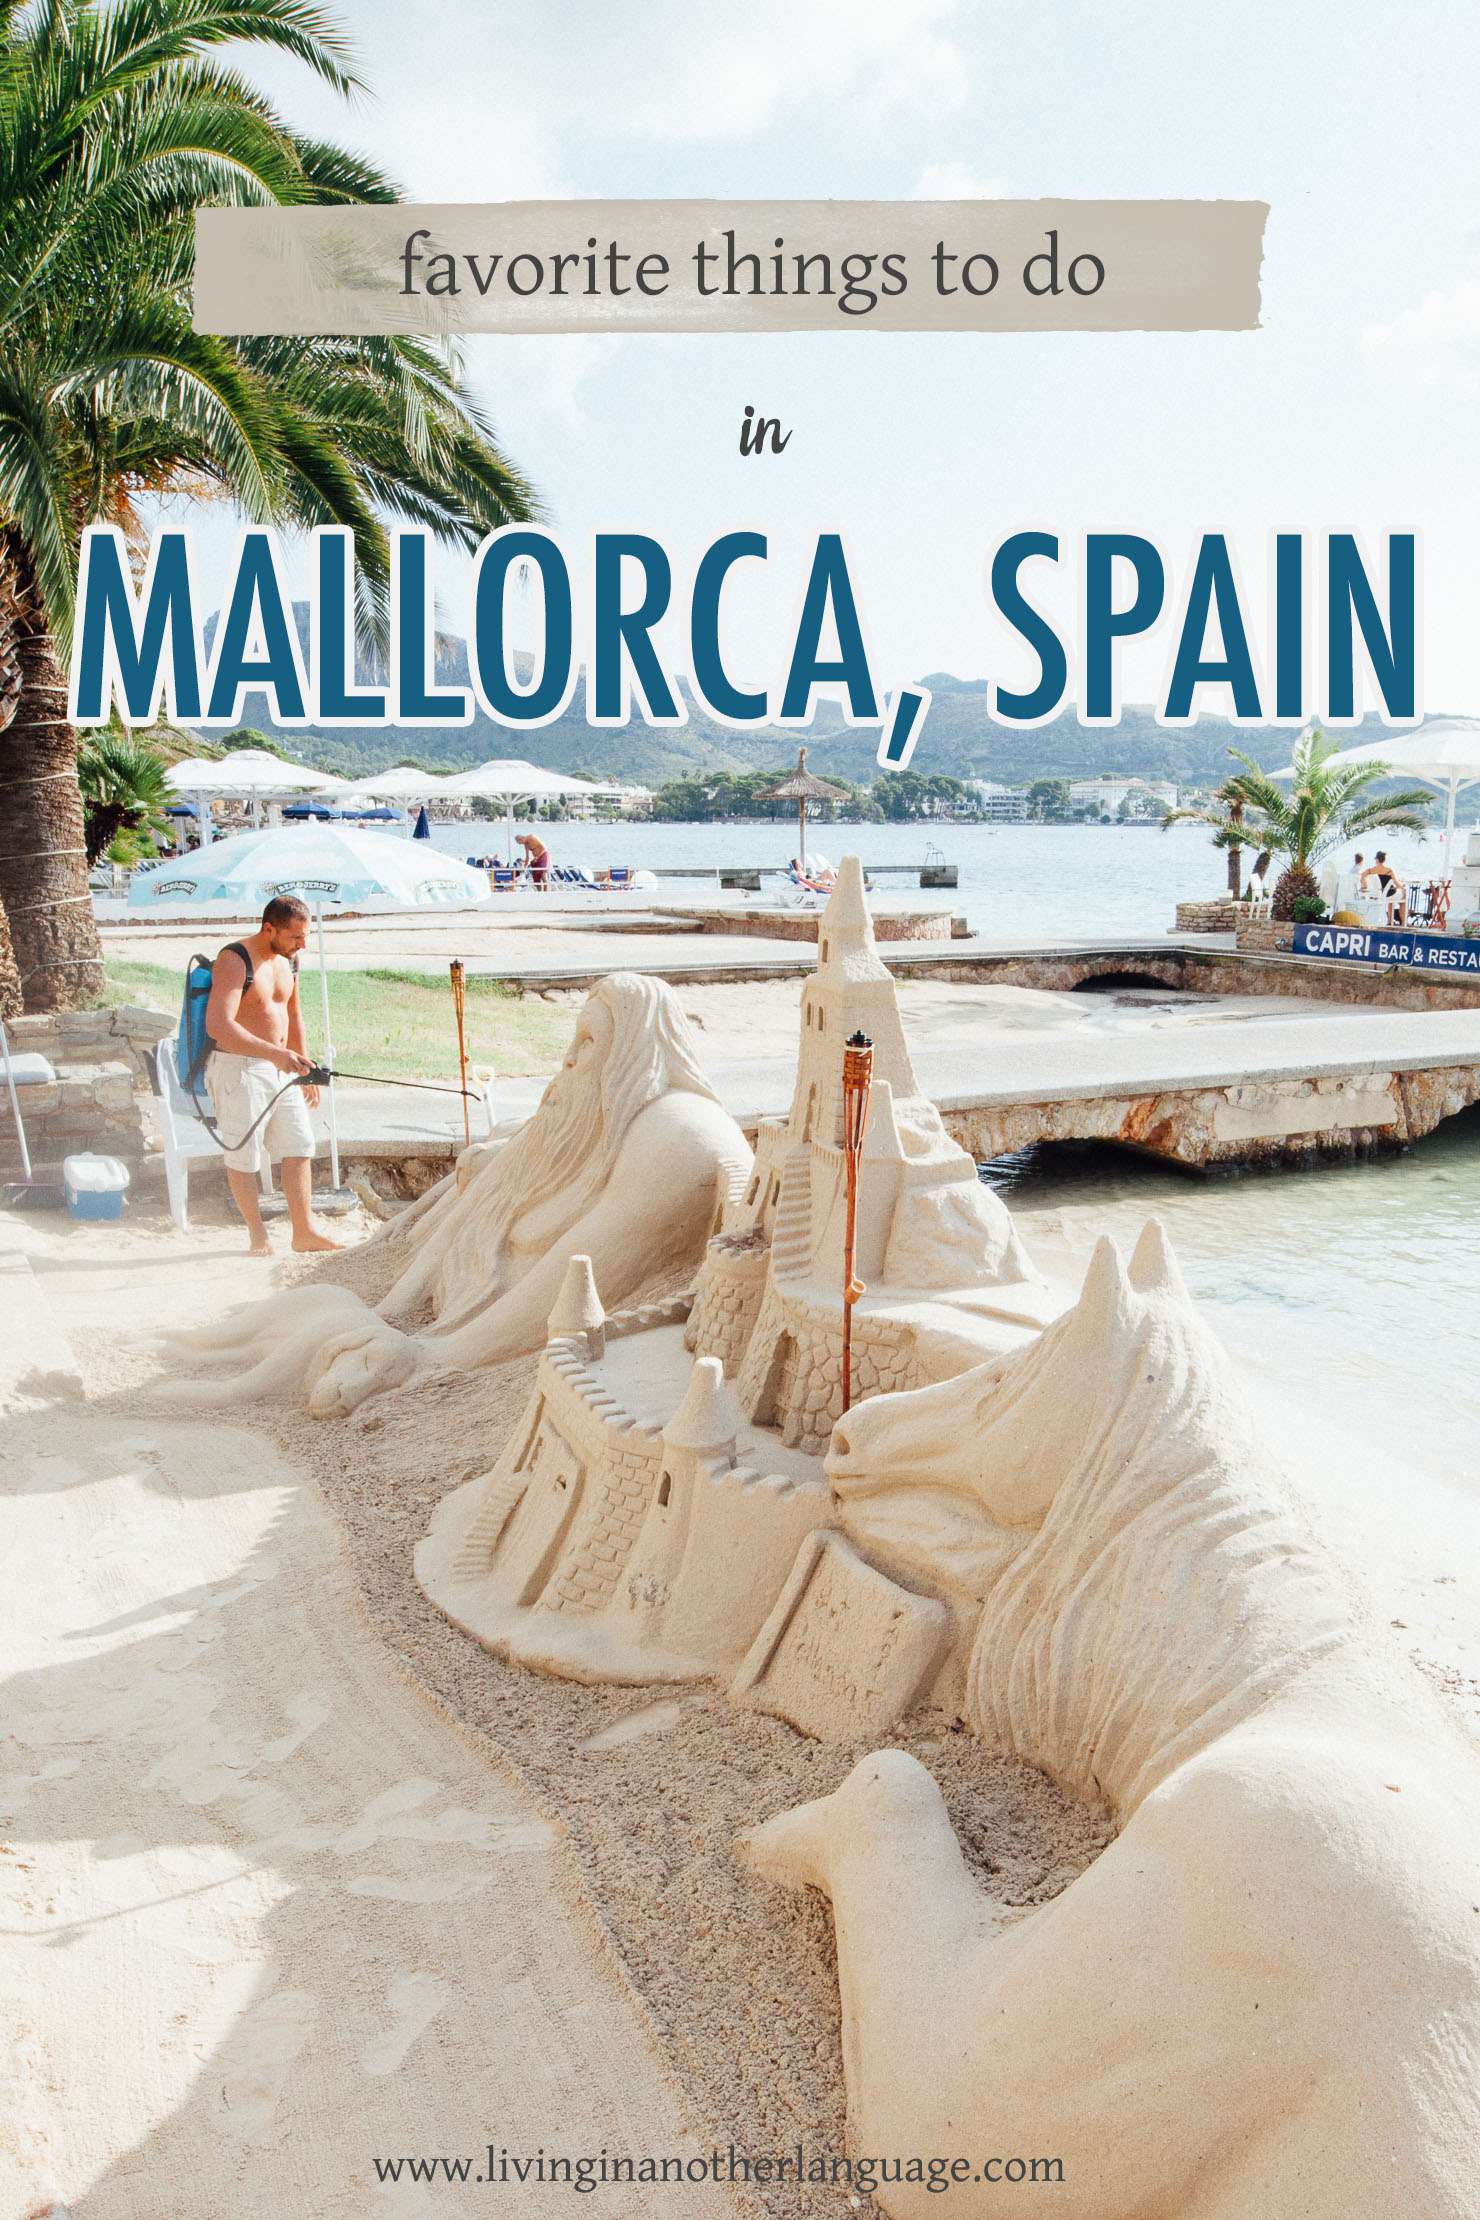 Things to do in Mallorca, Spain